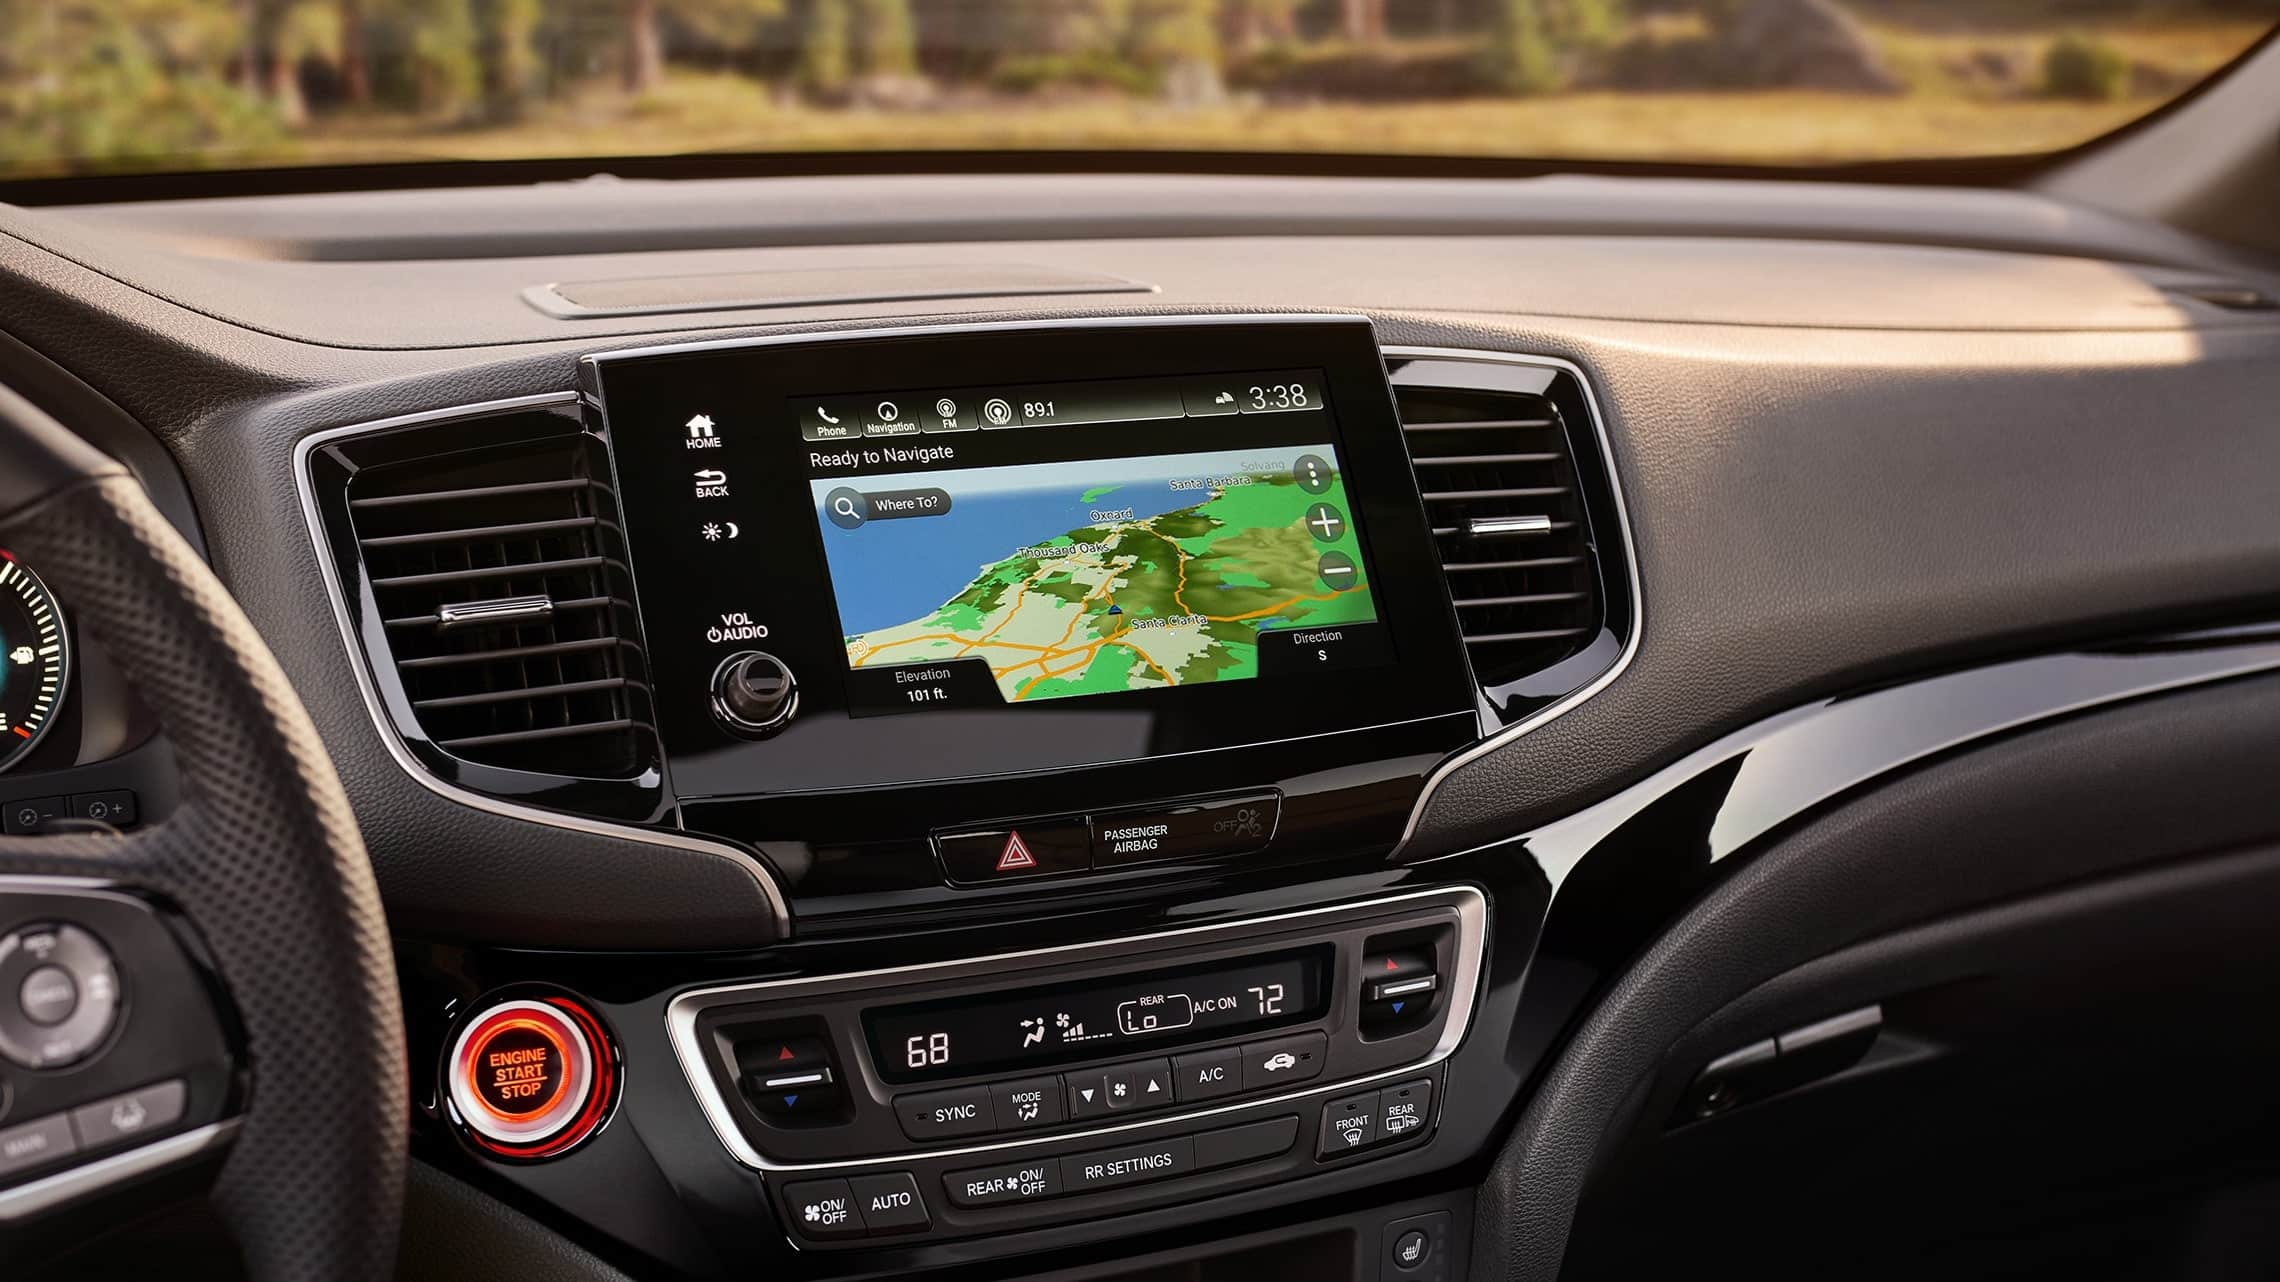 2019 Honda Passport featuring the Honda Satellite-Linked Navigation System™ touch- screen.